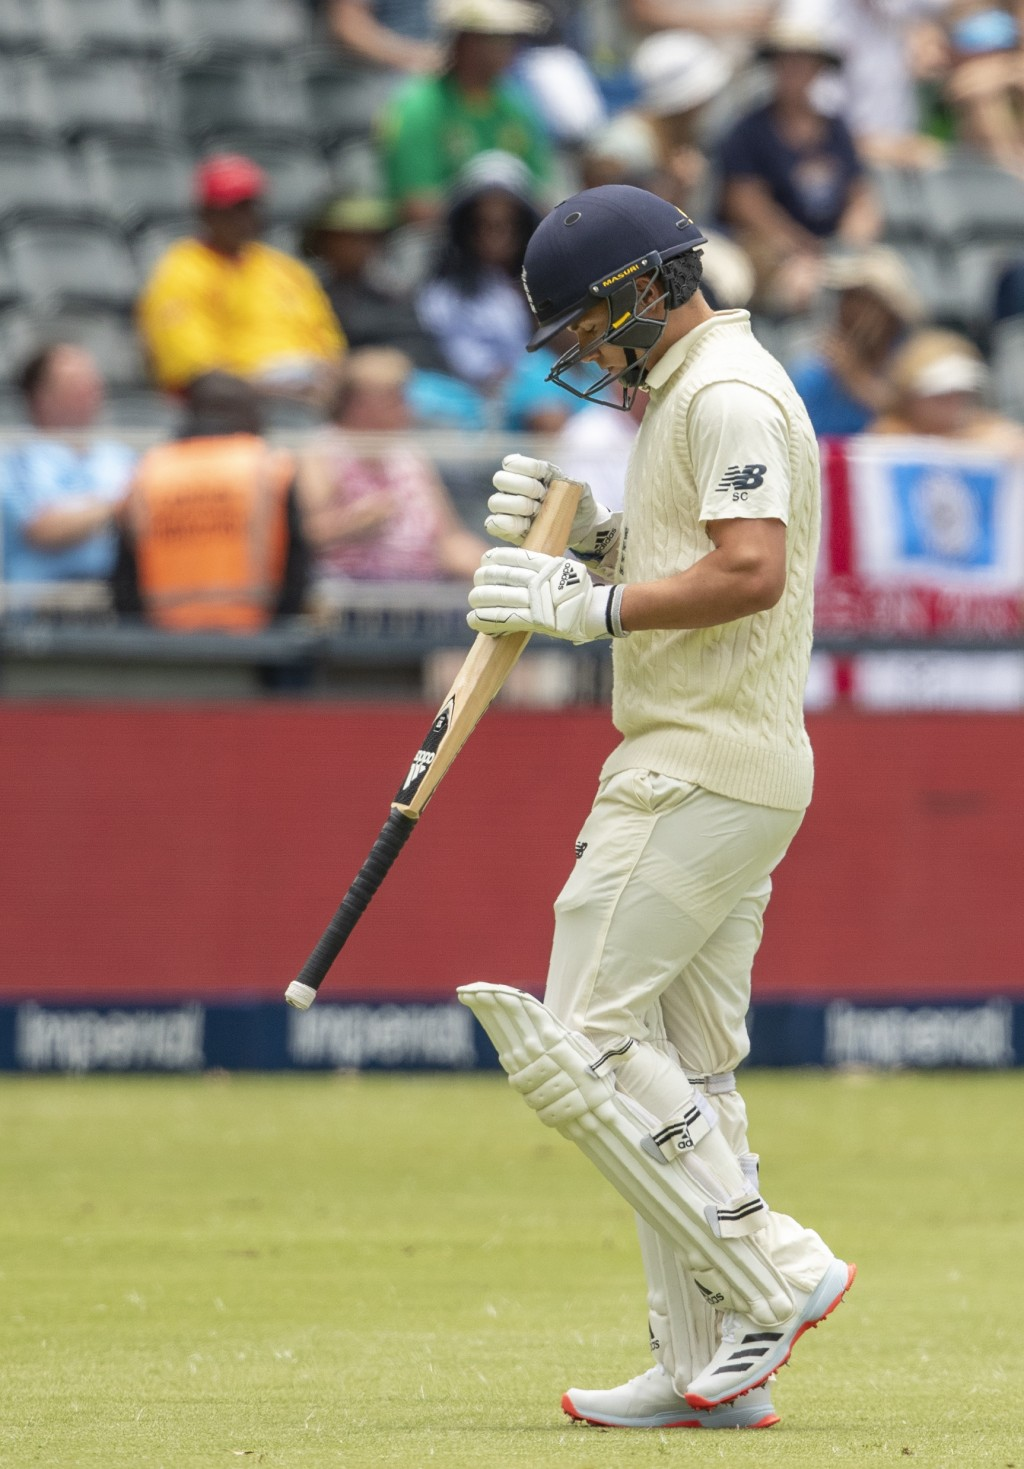 England's batsman Sam Curran leaves the field after being dismissed by South Africa's bowler Anrich Nortje for a duck, on day two of the fourth cricke...